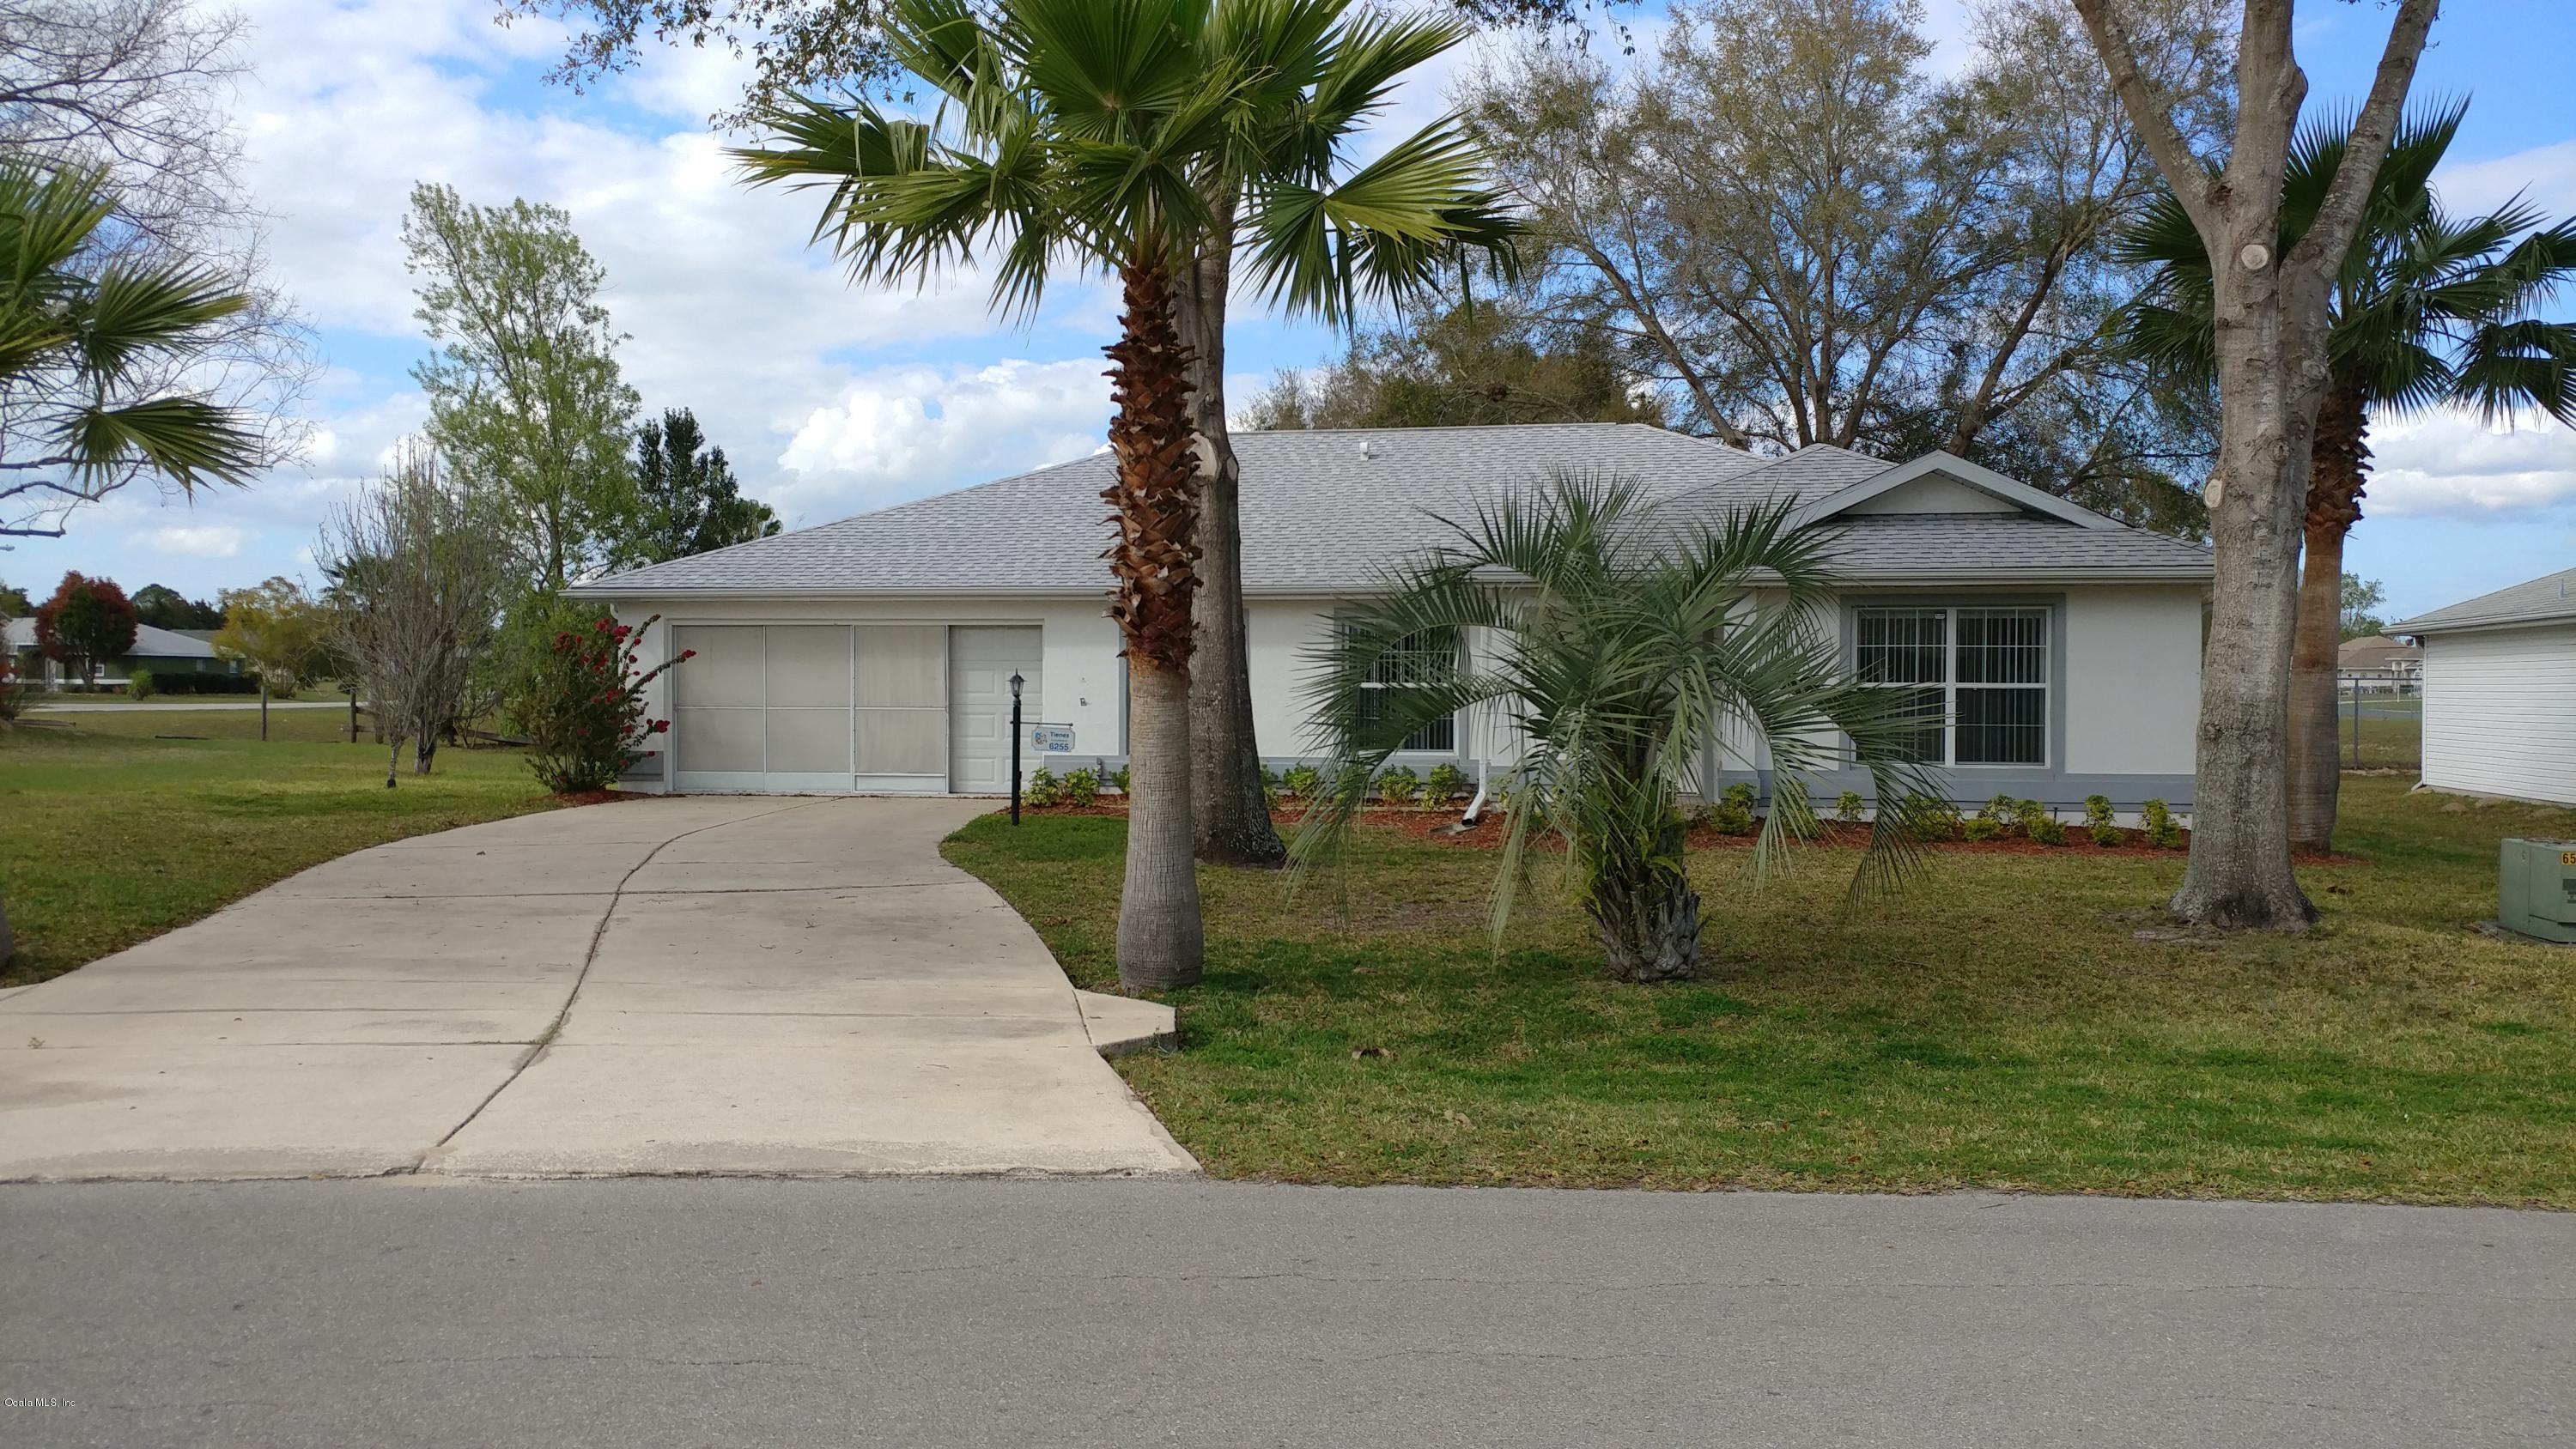 6255 SW 84TH STREET, OCALA, FL 34476